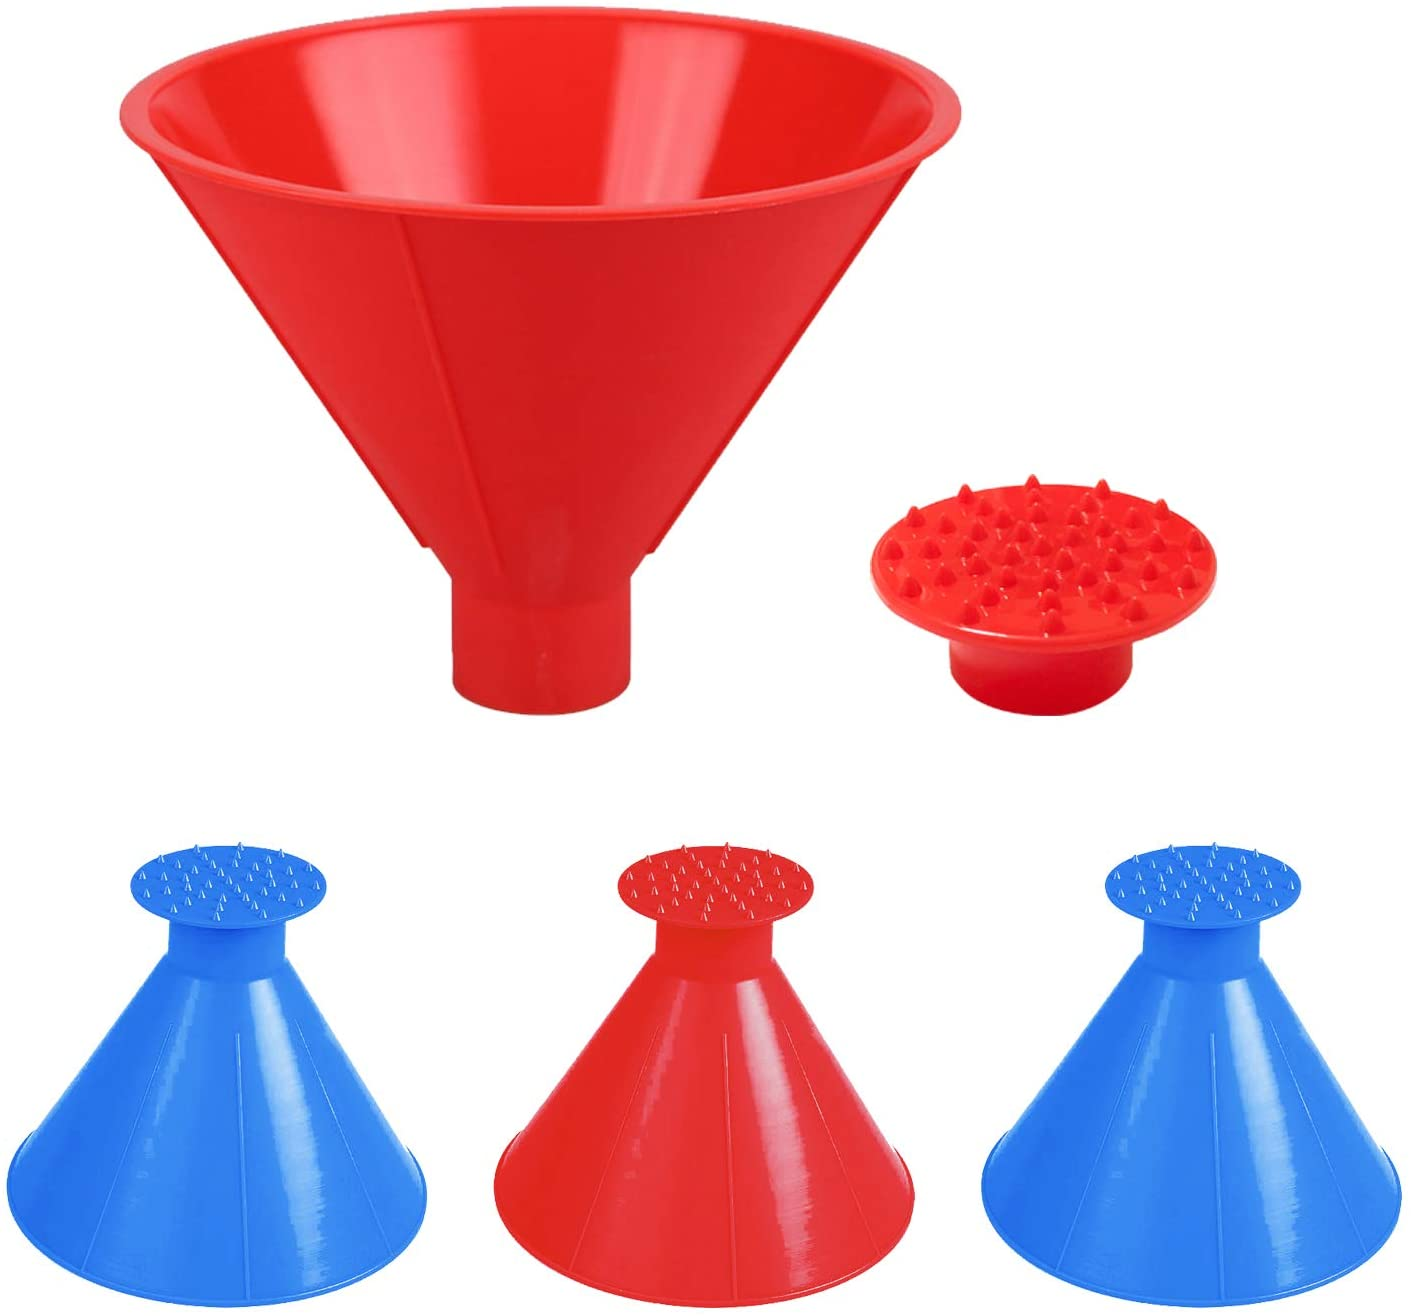 MAKHISTORY Magical Car Ice Scraper - 4Pack, Round Ice Scrapers for Car Windshield - Cone-Shaped Snow Remover Funnel with Four Ice Breakers